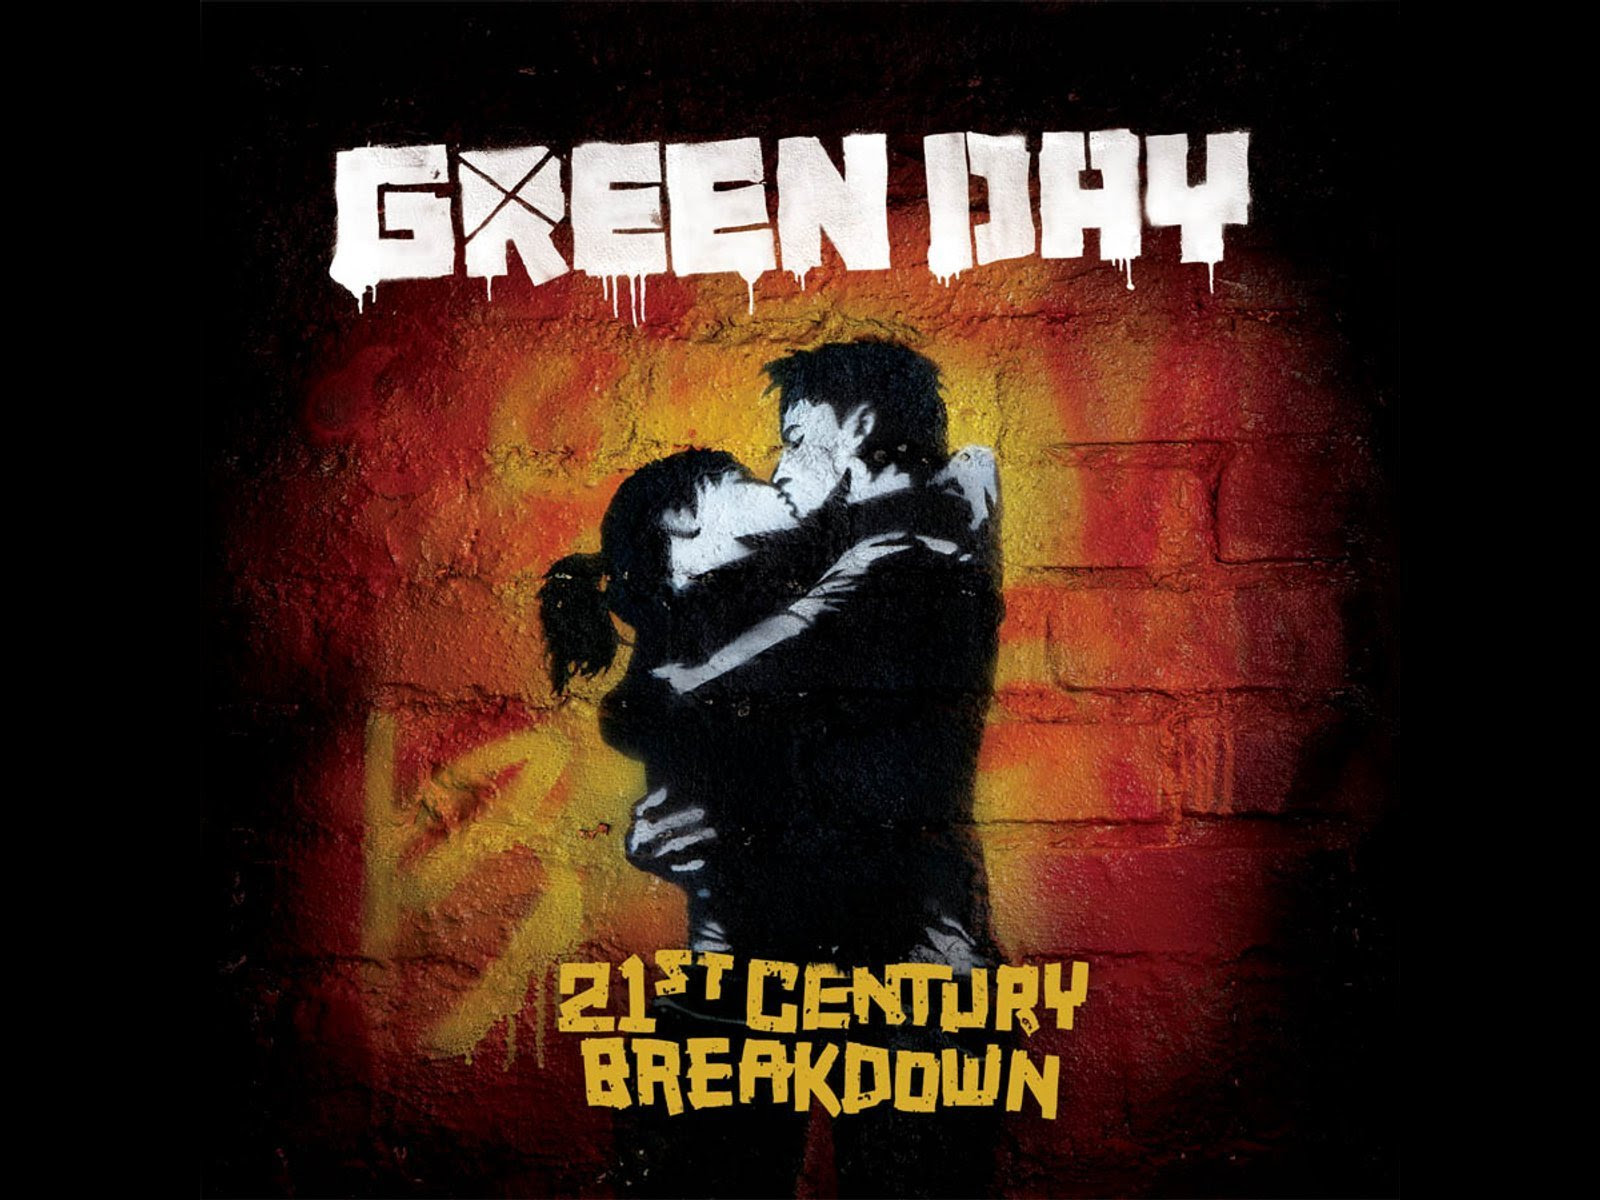 Green Day Wallpaper Hd New Wallpapers